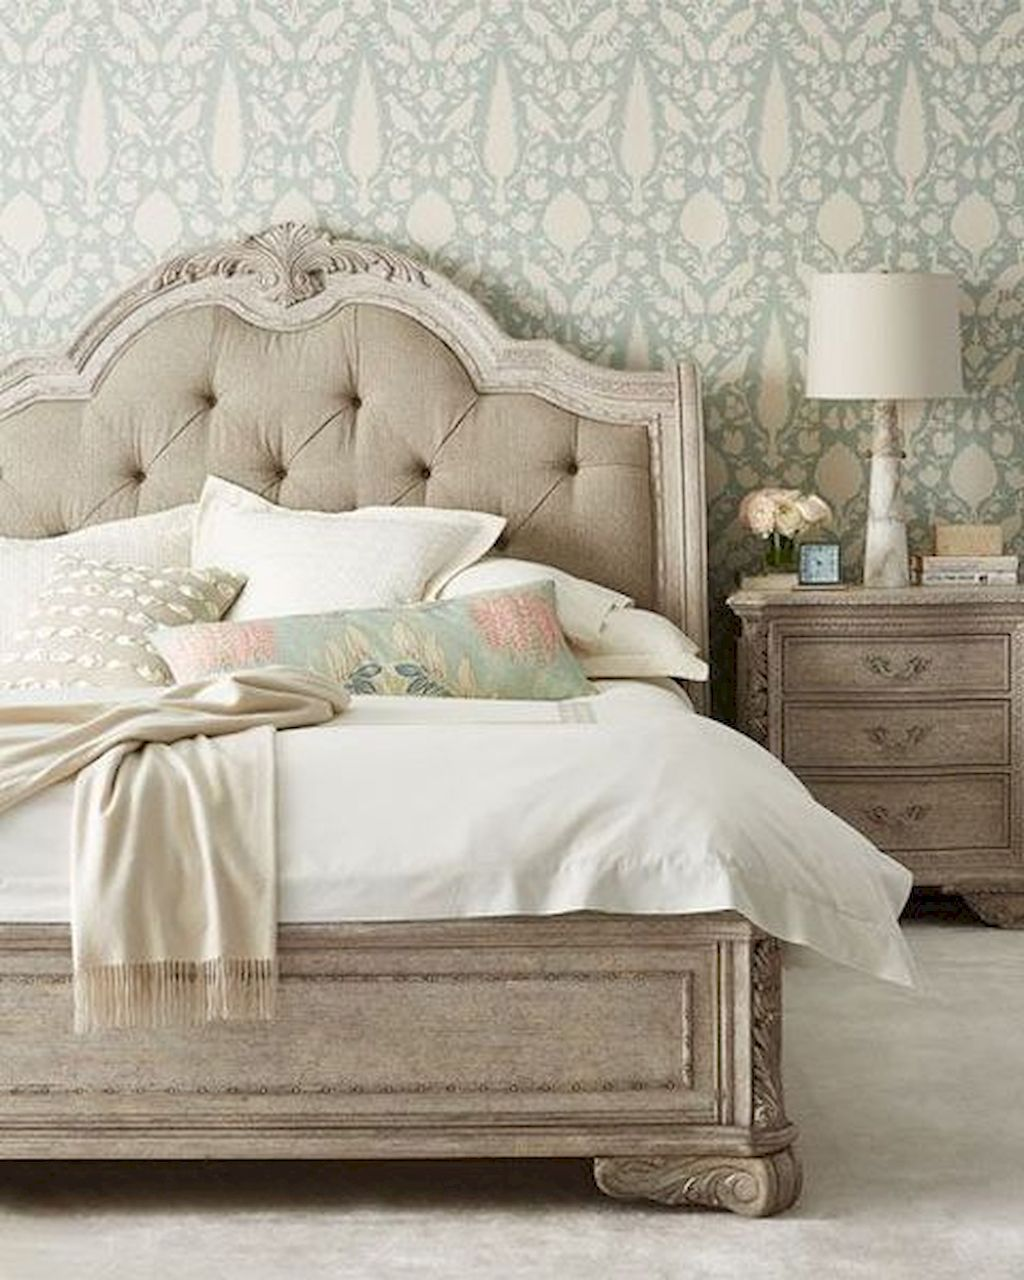 Fabulous Country Bedrooms Decorating Ideas 08